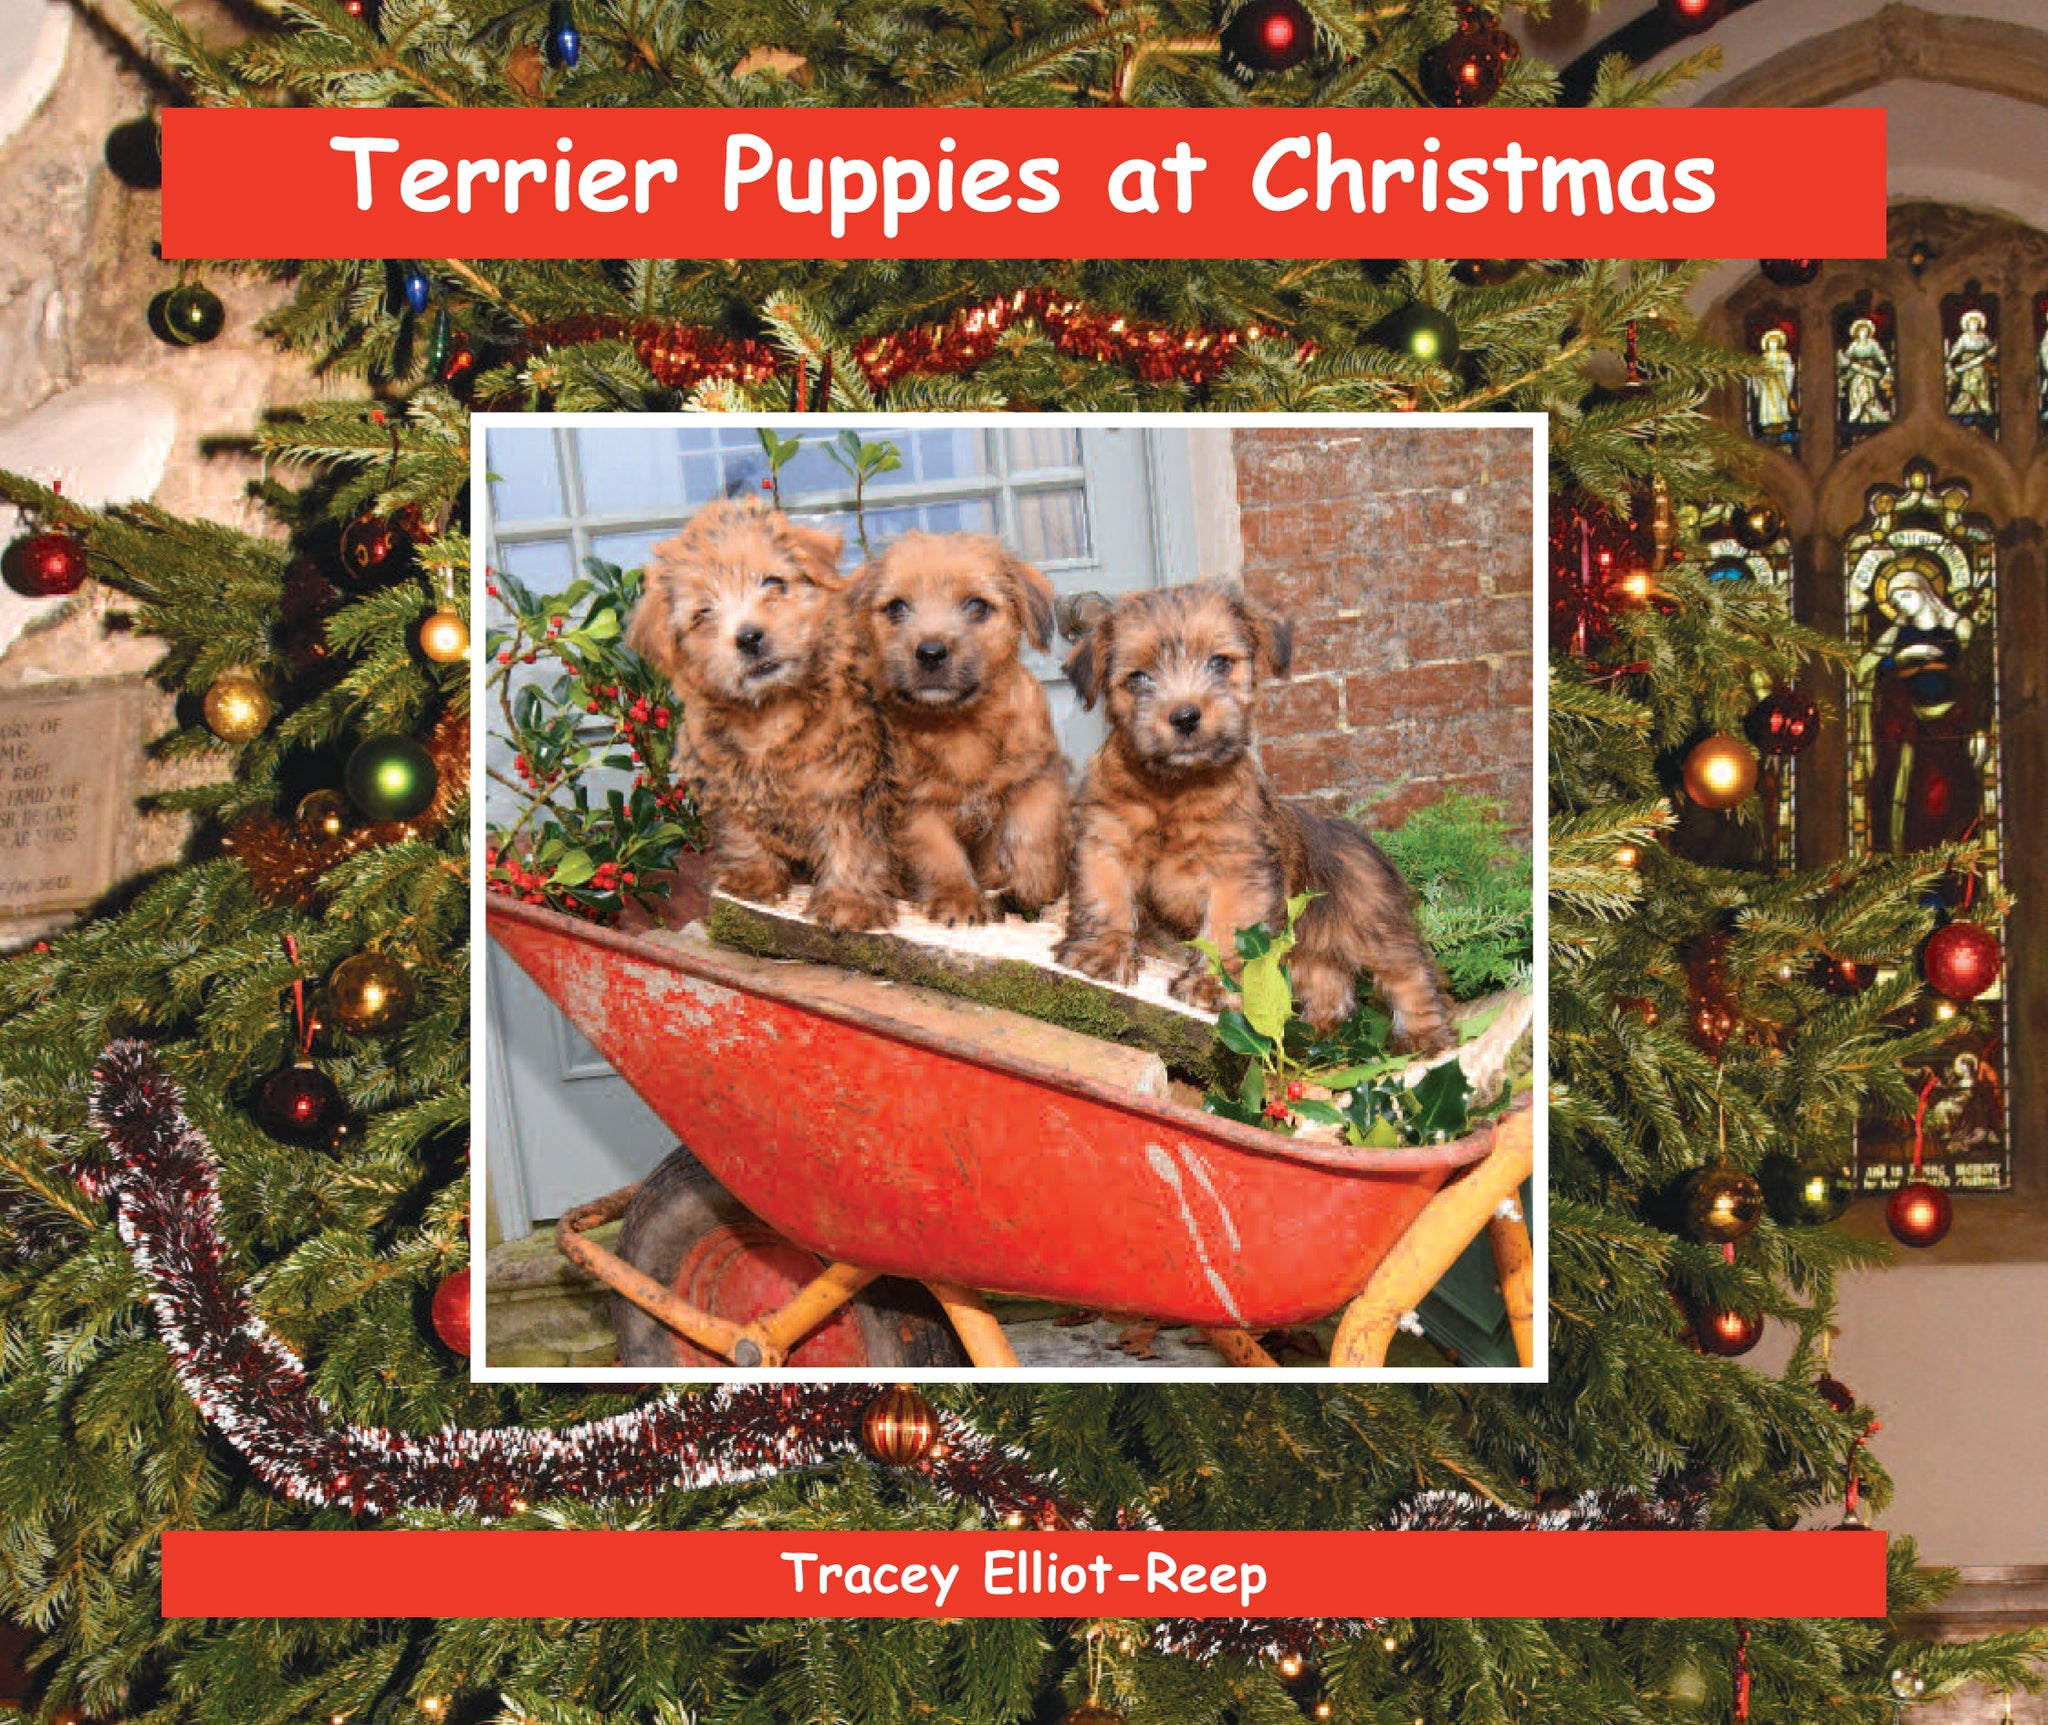 B029 - Terrier Puppies at Christmas - Flexi-cover Book